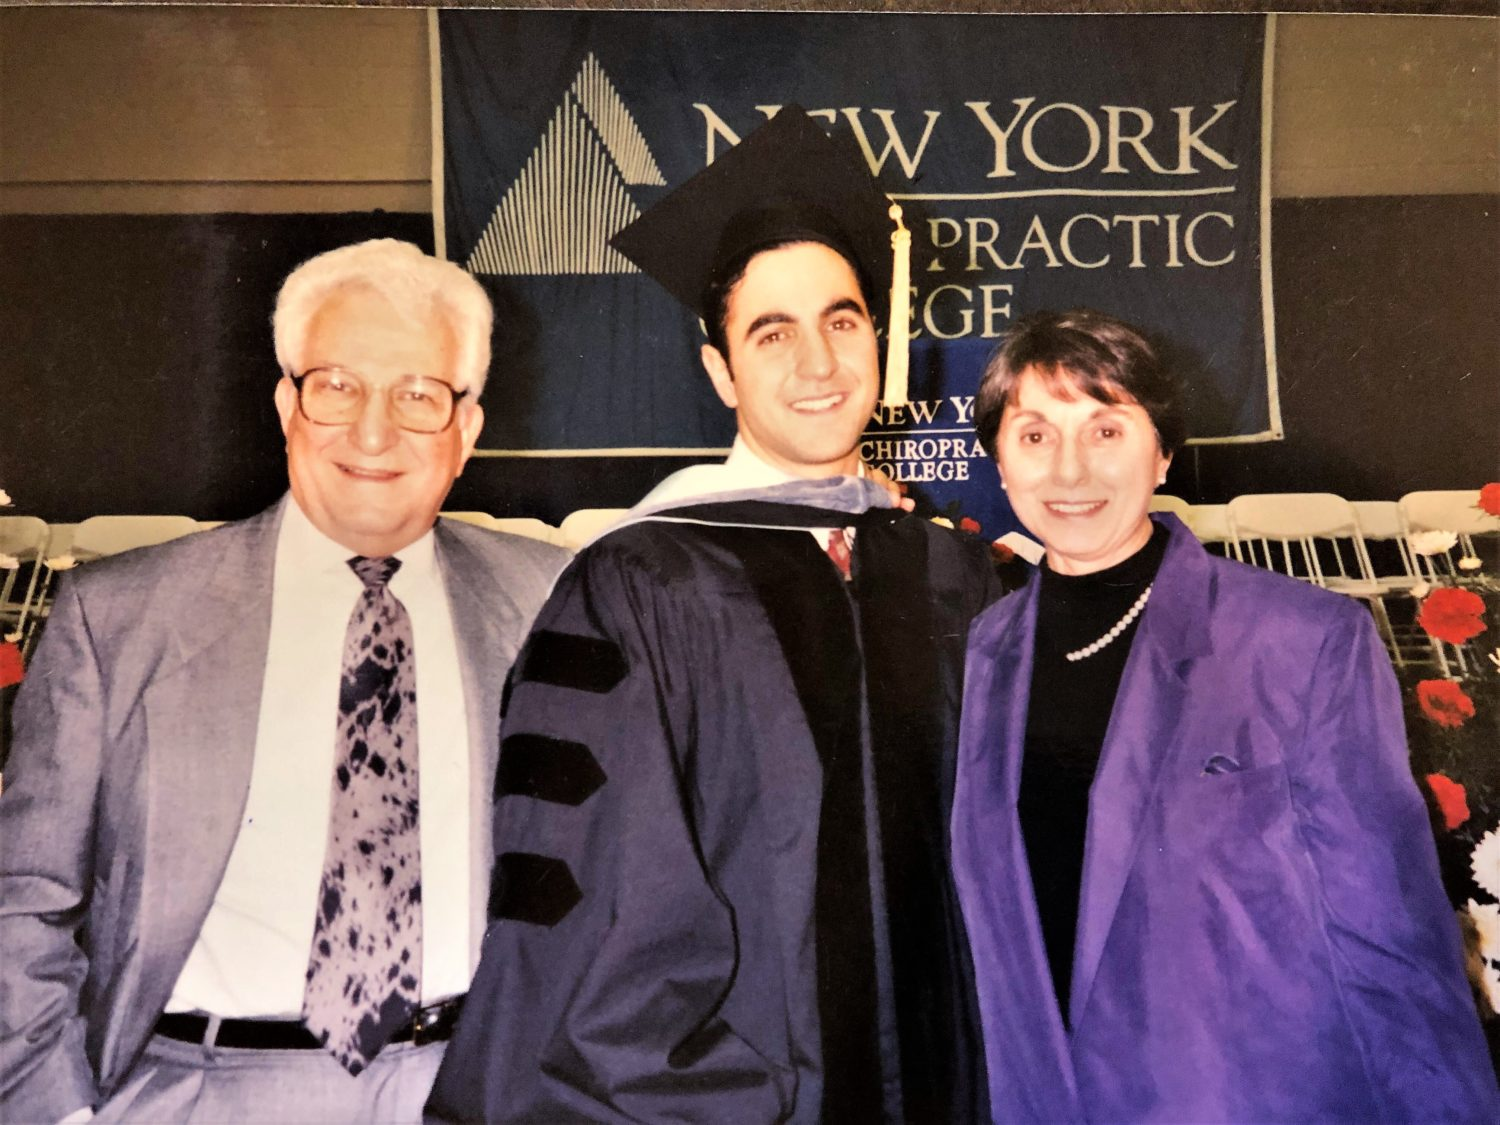 Dr. Proodian with his parents at his graduation